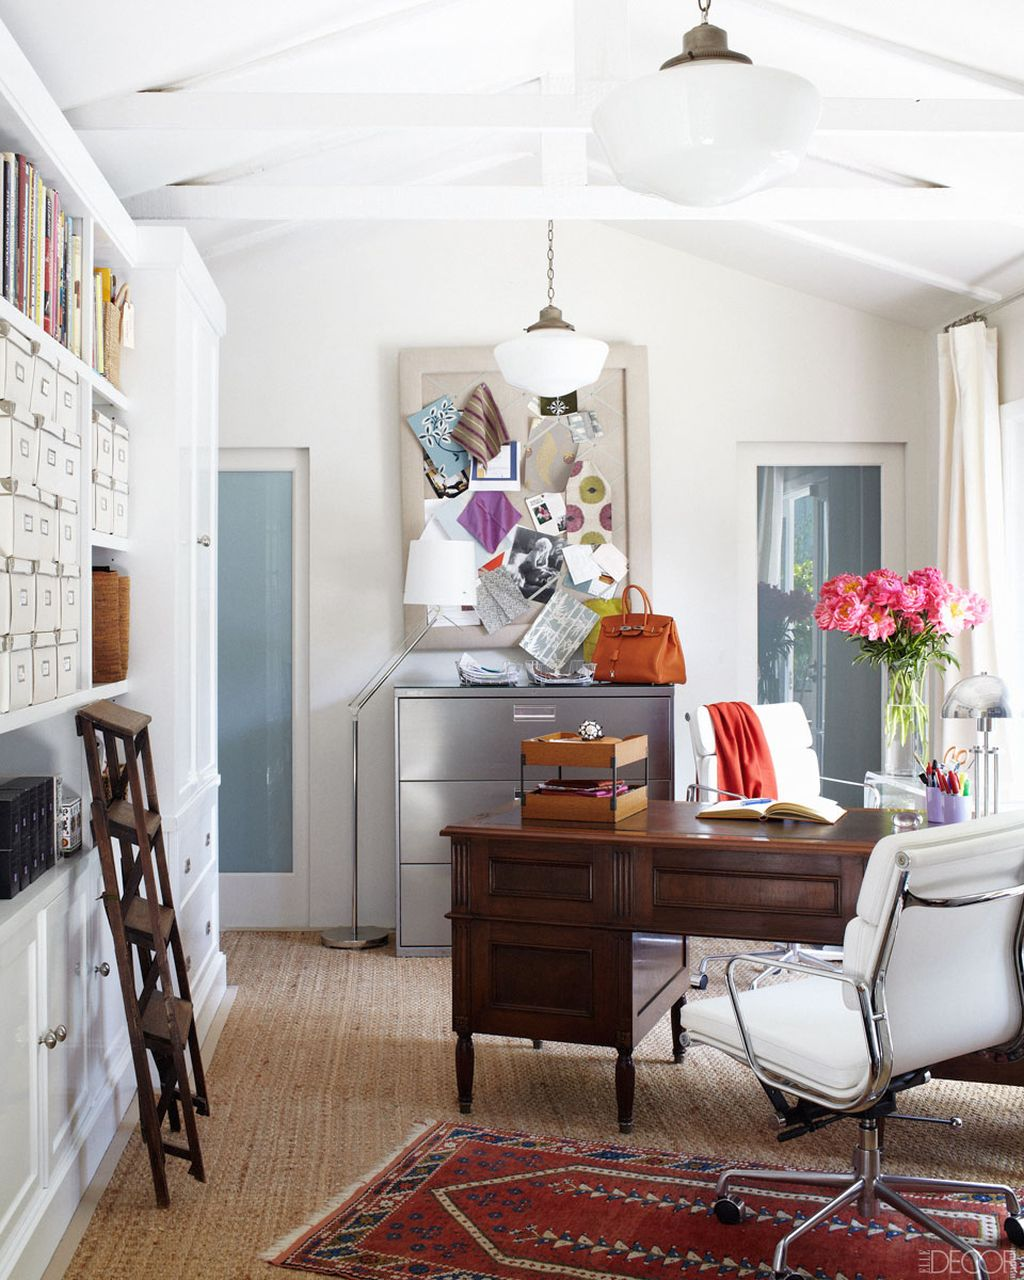 Home Office Design Decorating Ideas: 20 Inspiring Home Office Design Ideas For Small Spaces